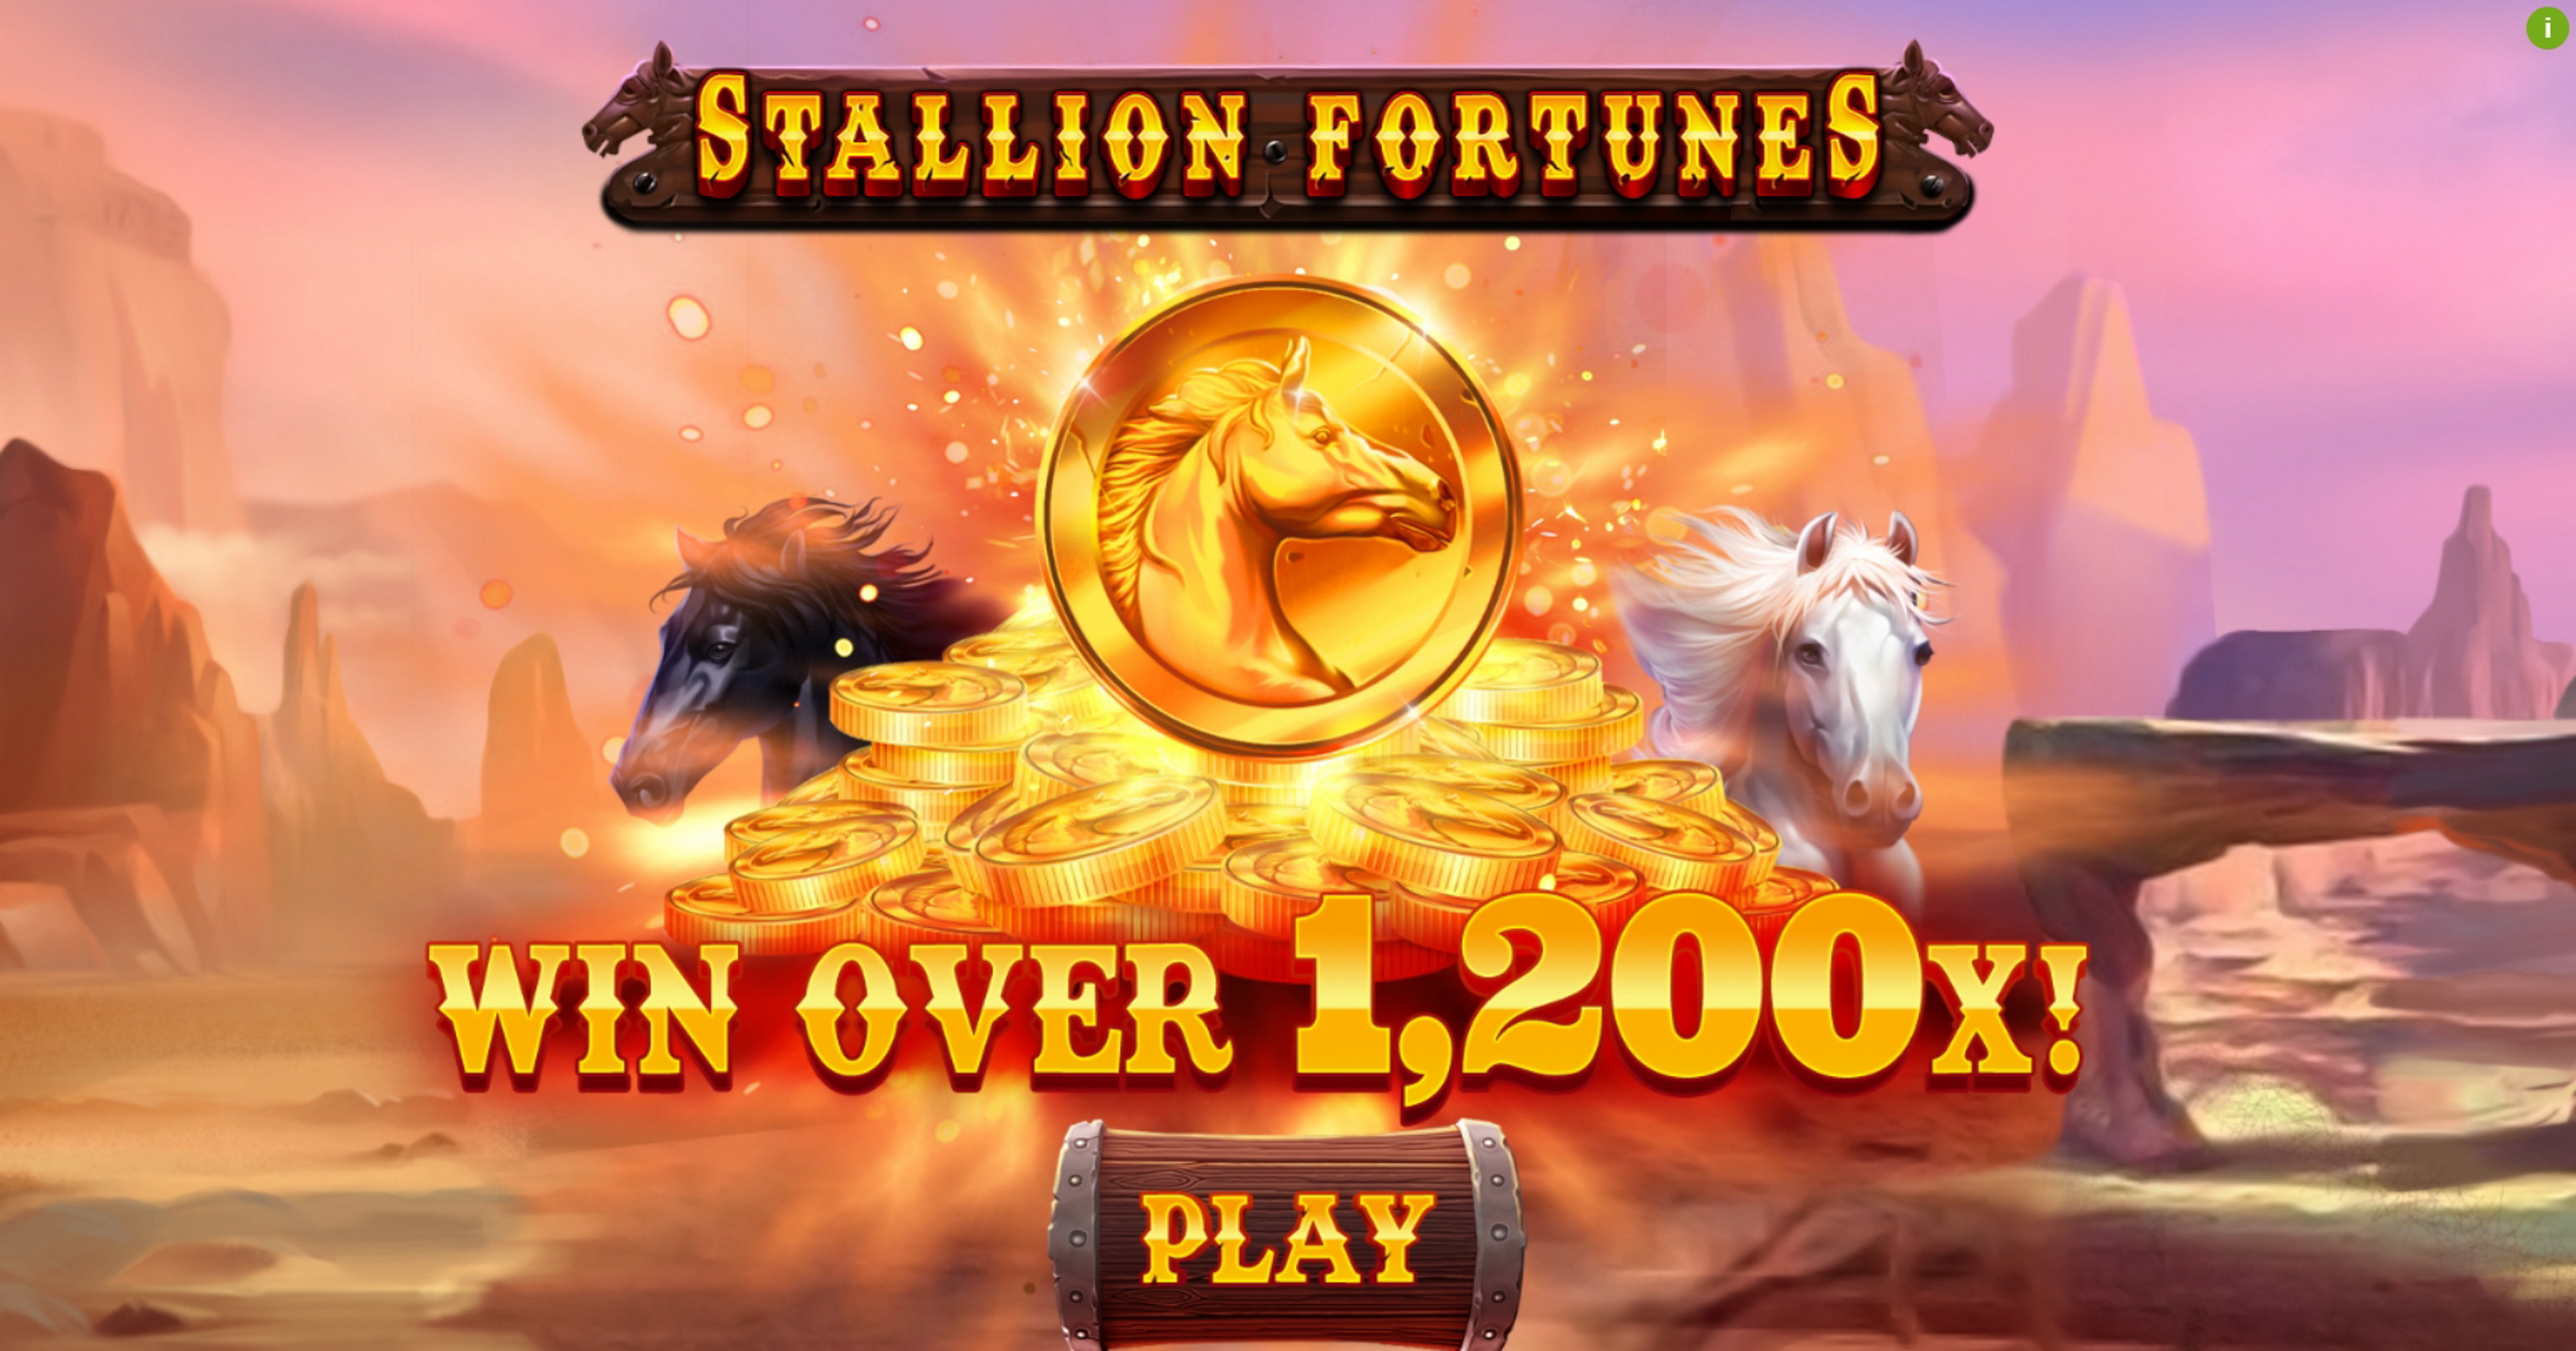 Play Stallion Fortunes Free Casino Slot Game by PariPlay